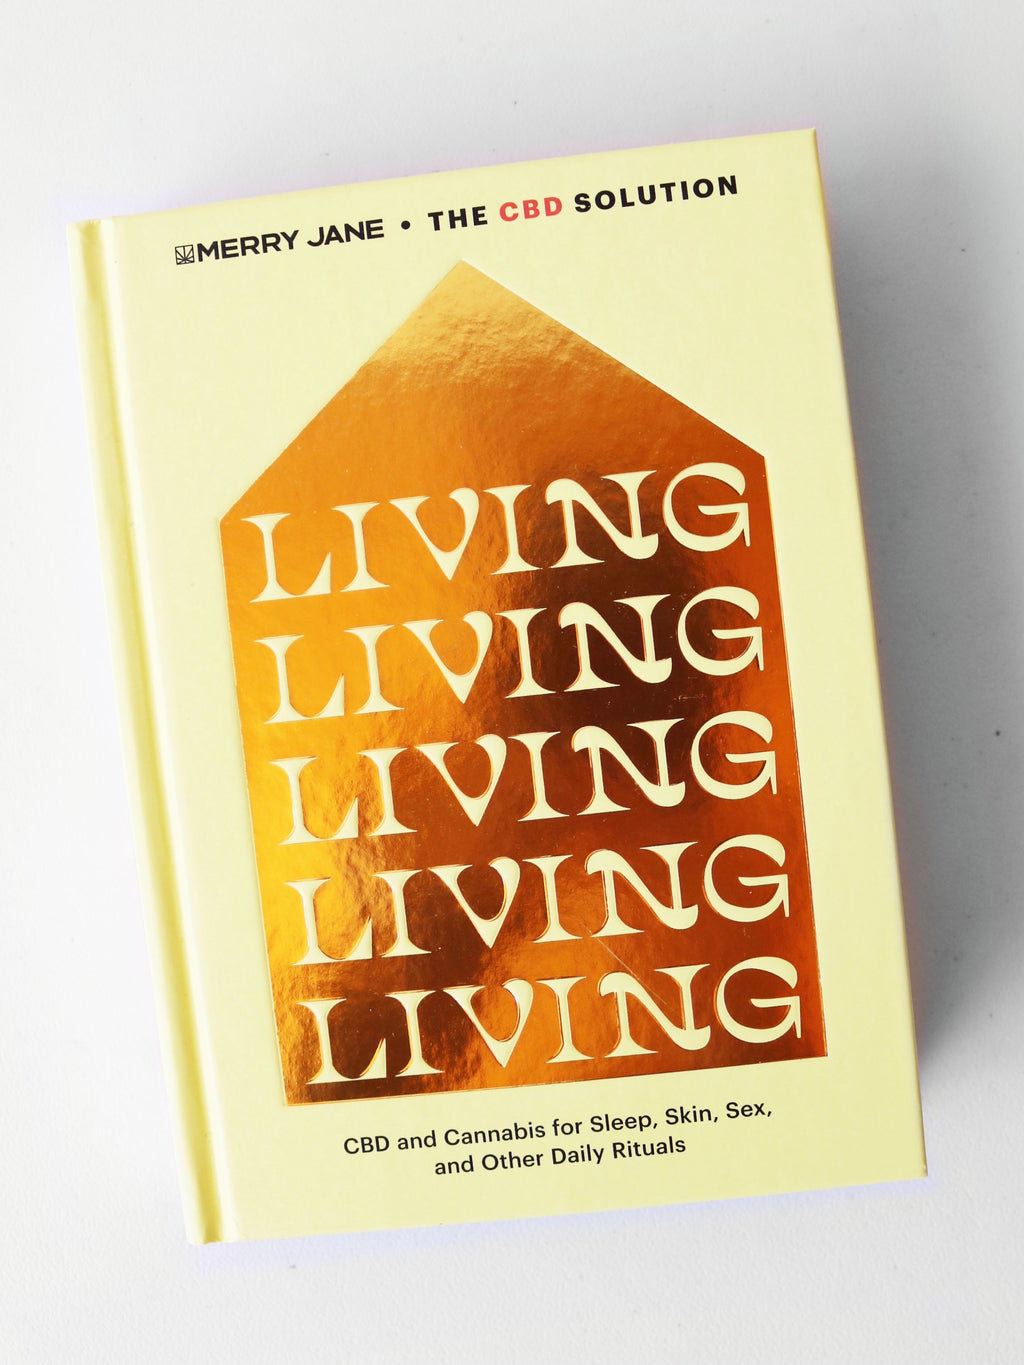 Merry Jane The CBD Solution: Living Book